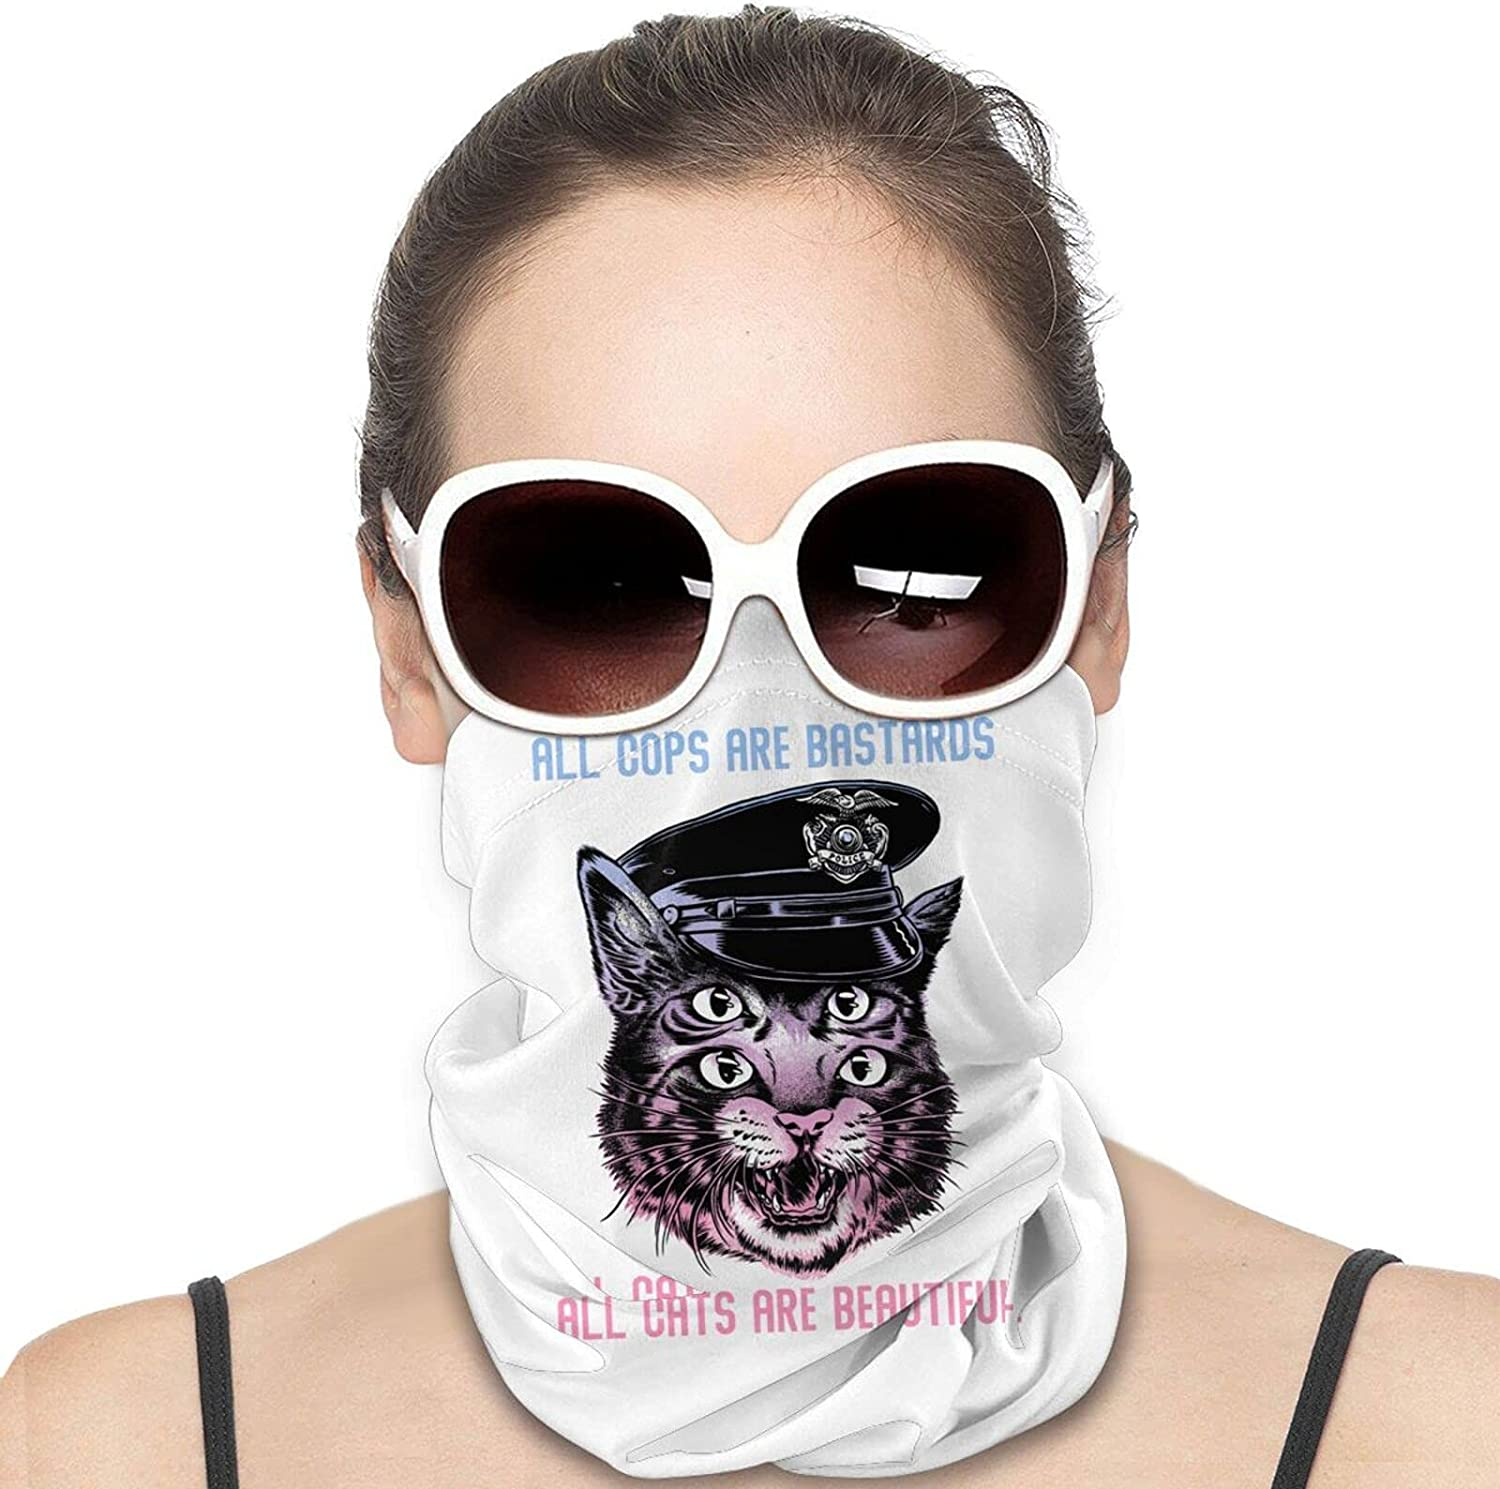 ACAB-All Cops Are Bastards Round Neck Gaiter Bandnas Face Cover Uv Protection Prevent bask in Ice Scarf Headbands Perfect for Motorcycle Cycling Running Festival Raves Outdoors